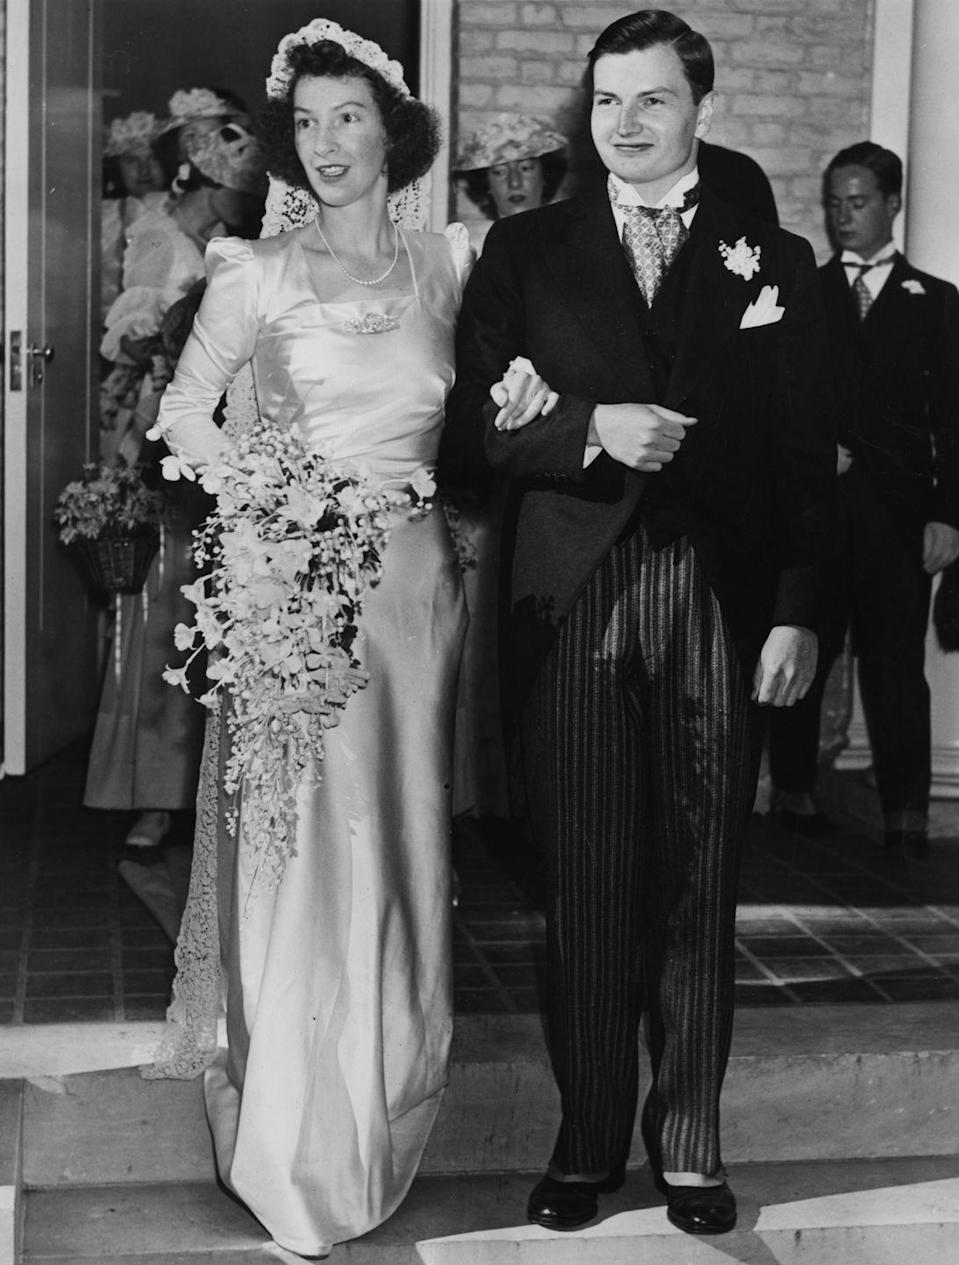 """<p>Almost ten years later in Bedford, NY, in 1940, his brother David Rockefeller (later the former chairman of the Chase Manhattan Bank and the Metropolitan Museum of Art) married Margaret McGrath and she wore a very similar gown—with slightly puffier sleeves. This, following a proposal made with a 5.6 carat rectangular step-cut <a href=""""https://www.christies.com/features/Live-like-a-Rockefeller-A-Raymond-Yard-engagement-ring-8926-1.aspx"""" rel=""""nofollow noopener"""" target=""""_blank"""" data-ylk=""""slk:diamond ring"""" class=""""link rapid-noclick-resp"""">diamond ring</a>. </p><p>Random aside that has literally nothing to do with the Rockefellers: Bedford is where Blake Lively and Ryan Reynolds currently live. </p>"""